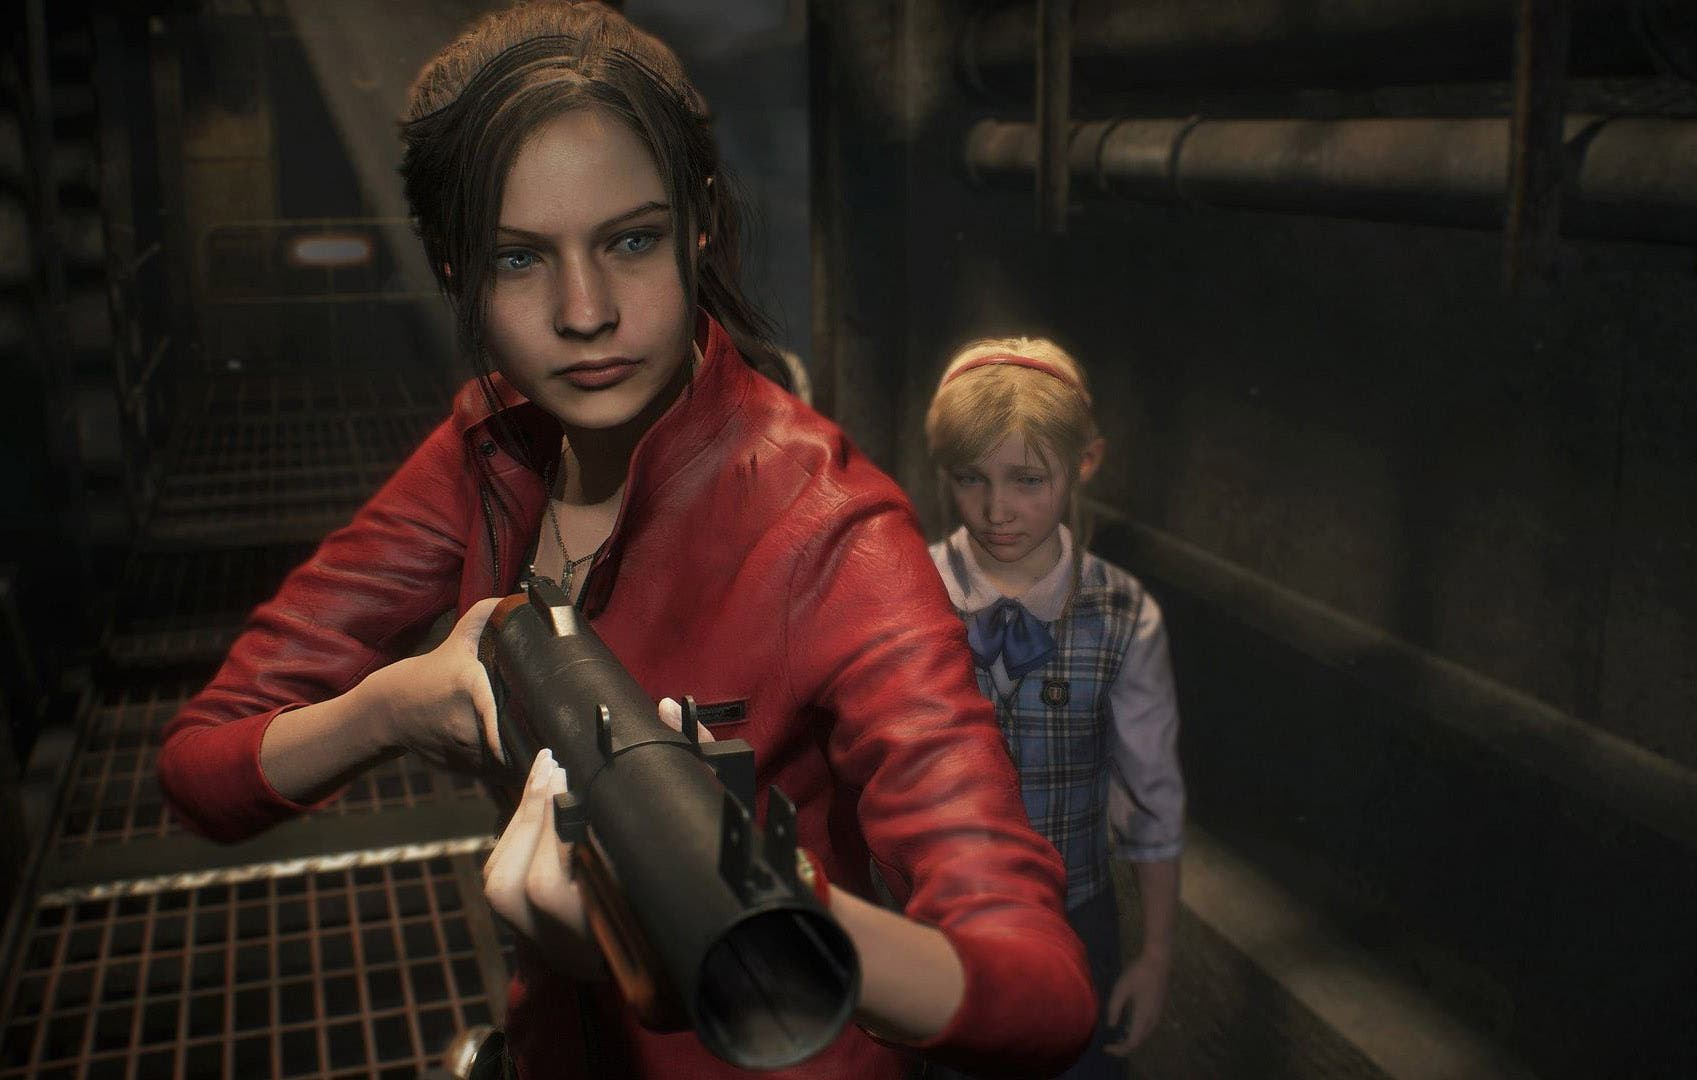 Claire Redfield de Resident Evil sería la nueva superviviente de Dead by Daylight 10